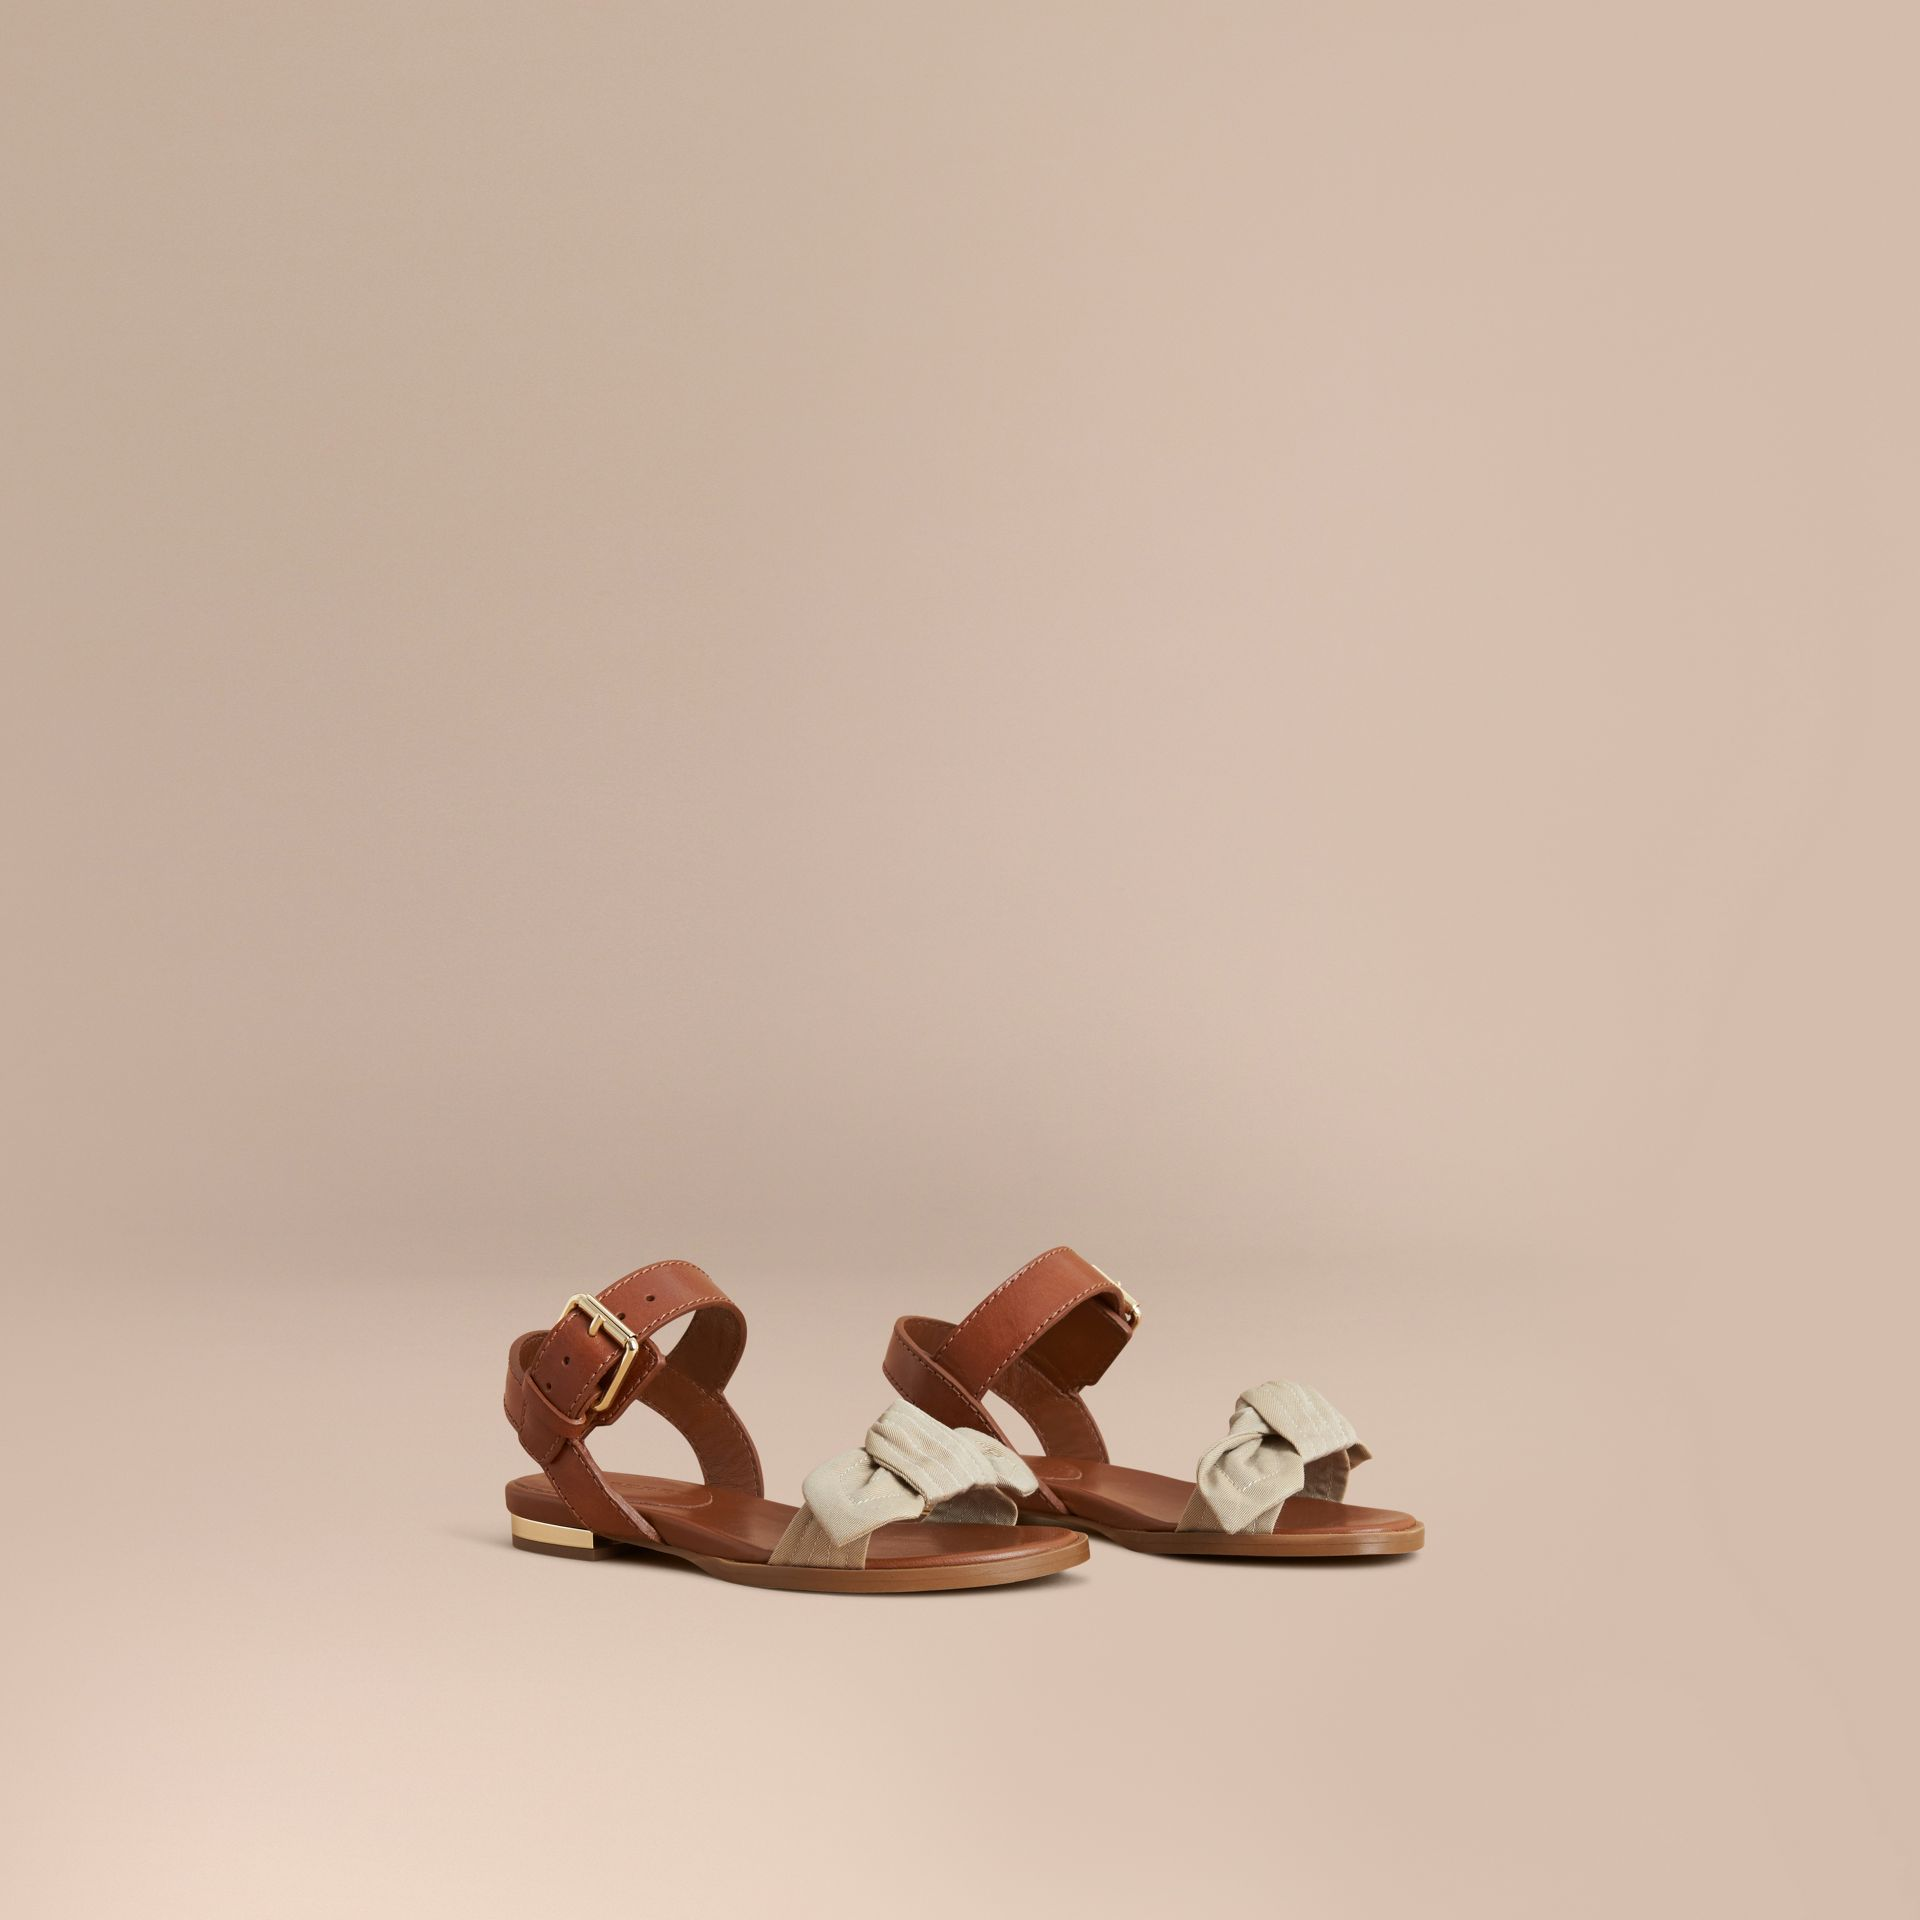 Cotton Bow and Leather Sandals in Honey | Burberry - gallery image 1